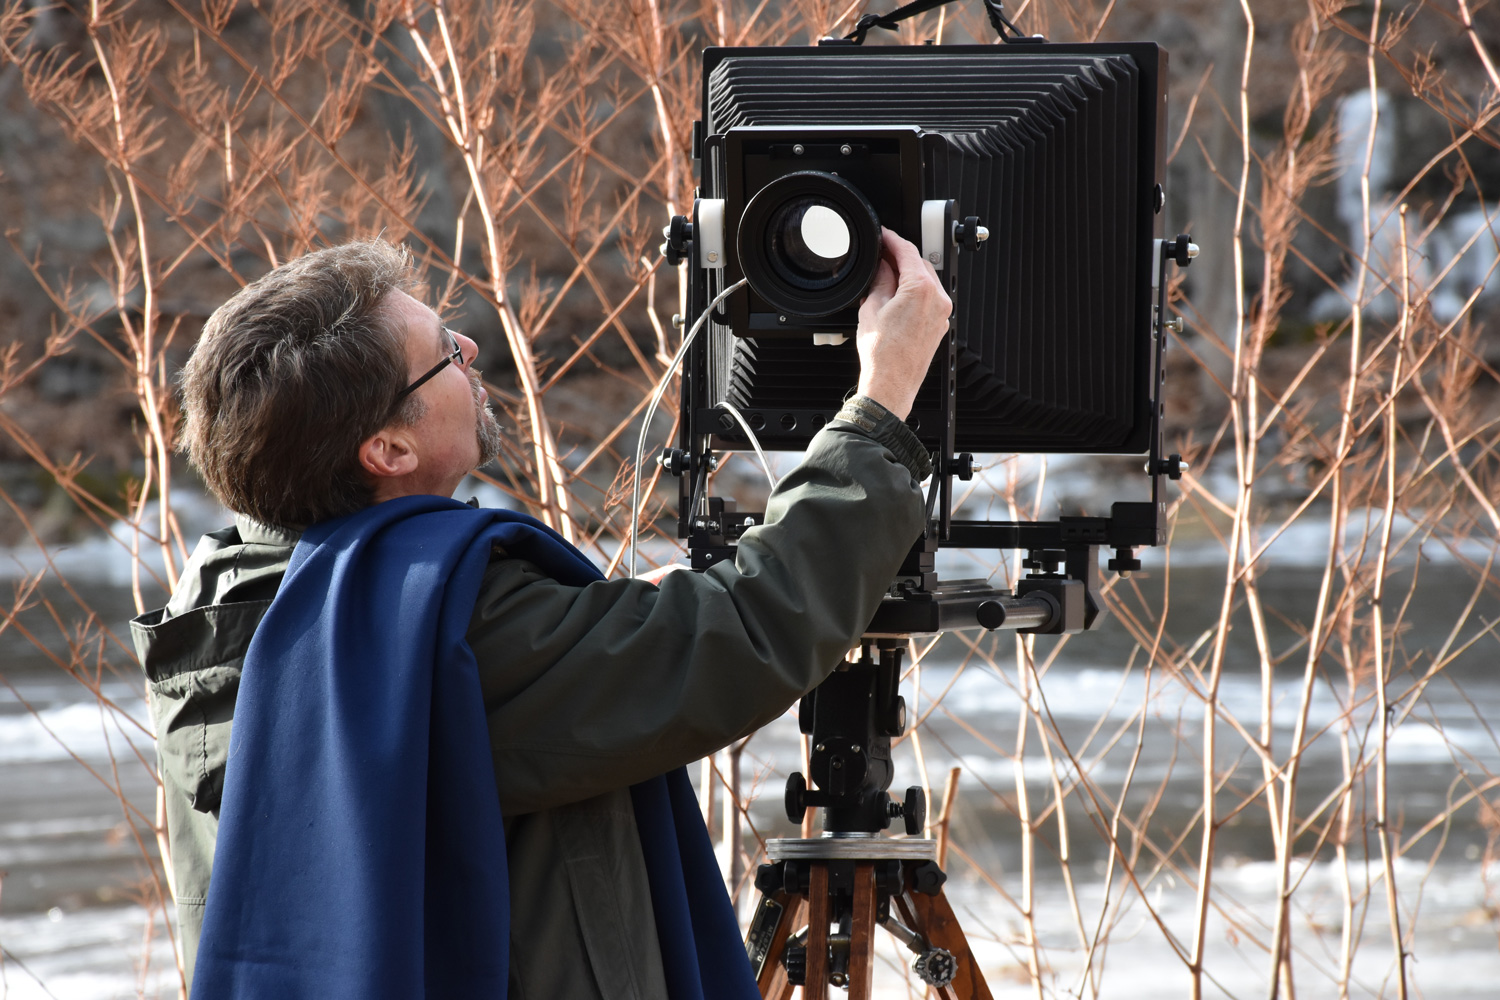 Working with the Earthlight 11x14 ultra large format film view camera.